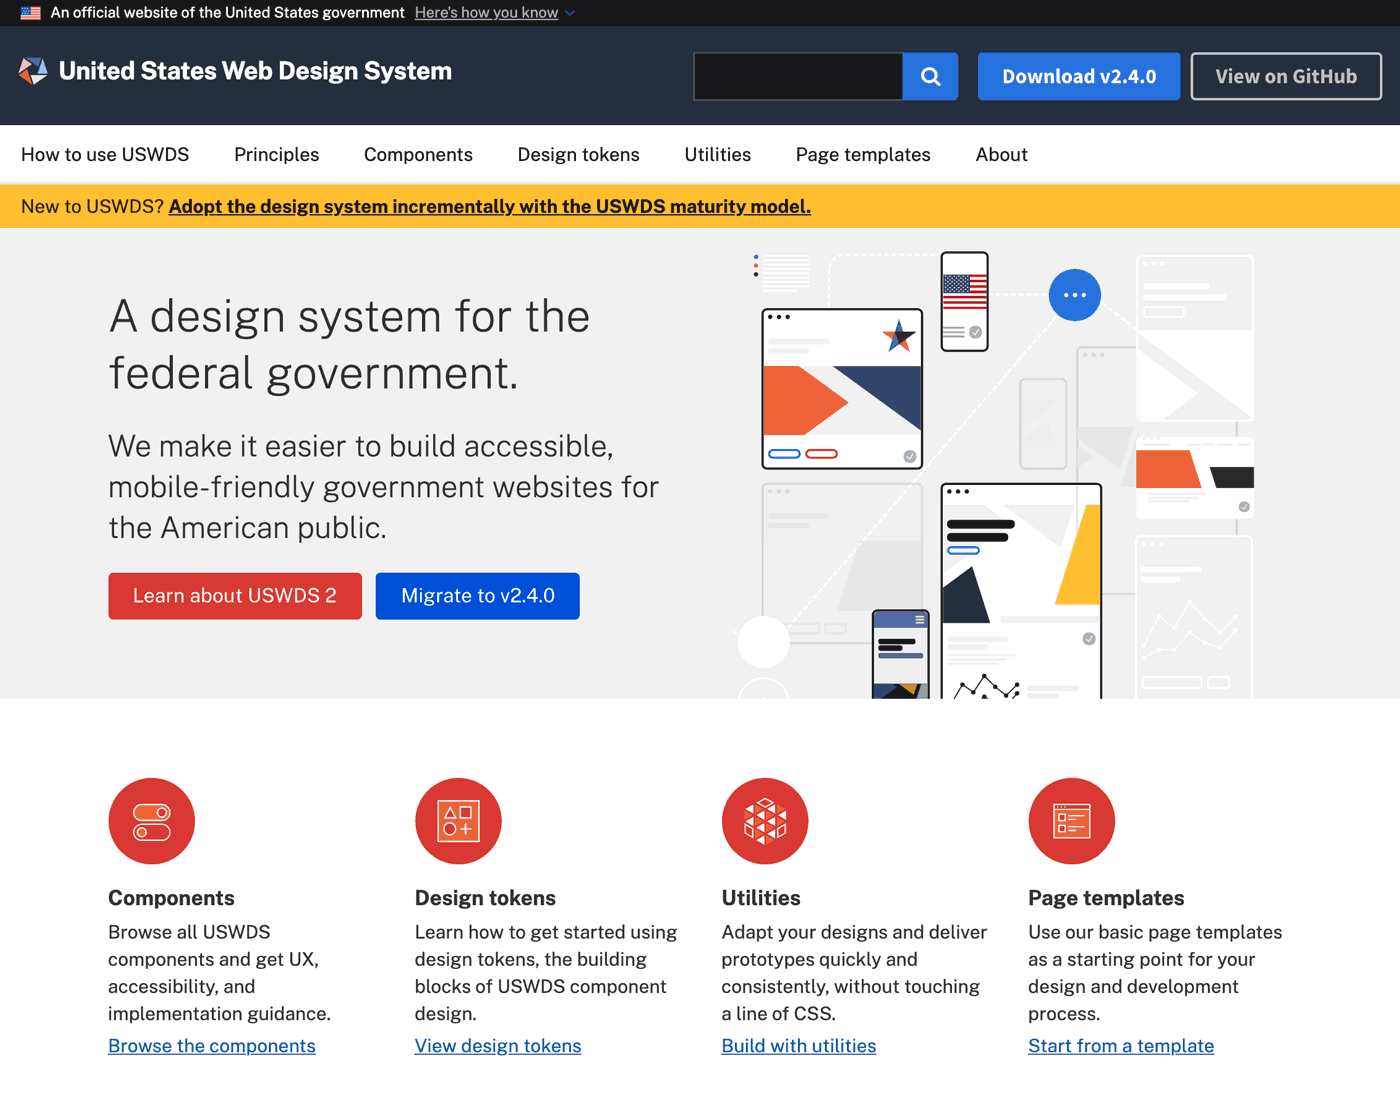 screen shot of united states web design system